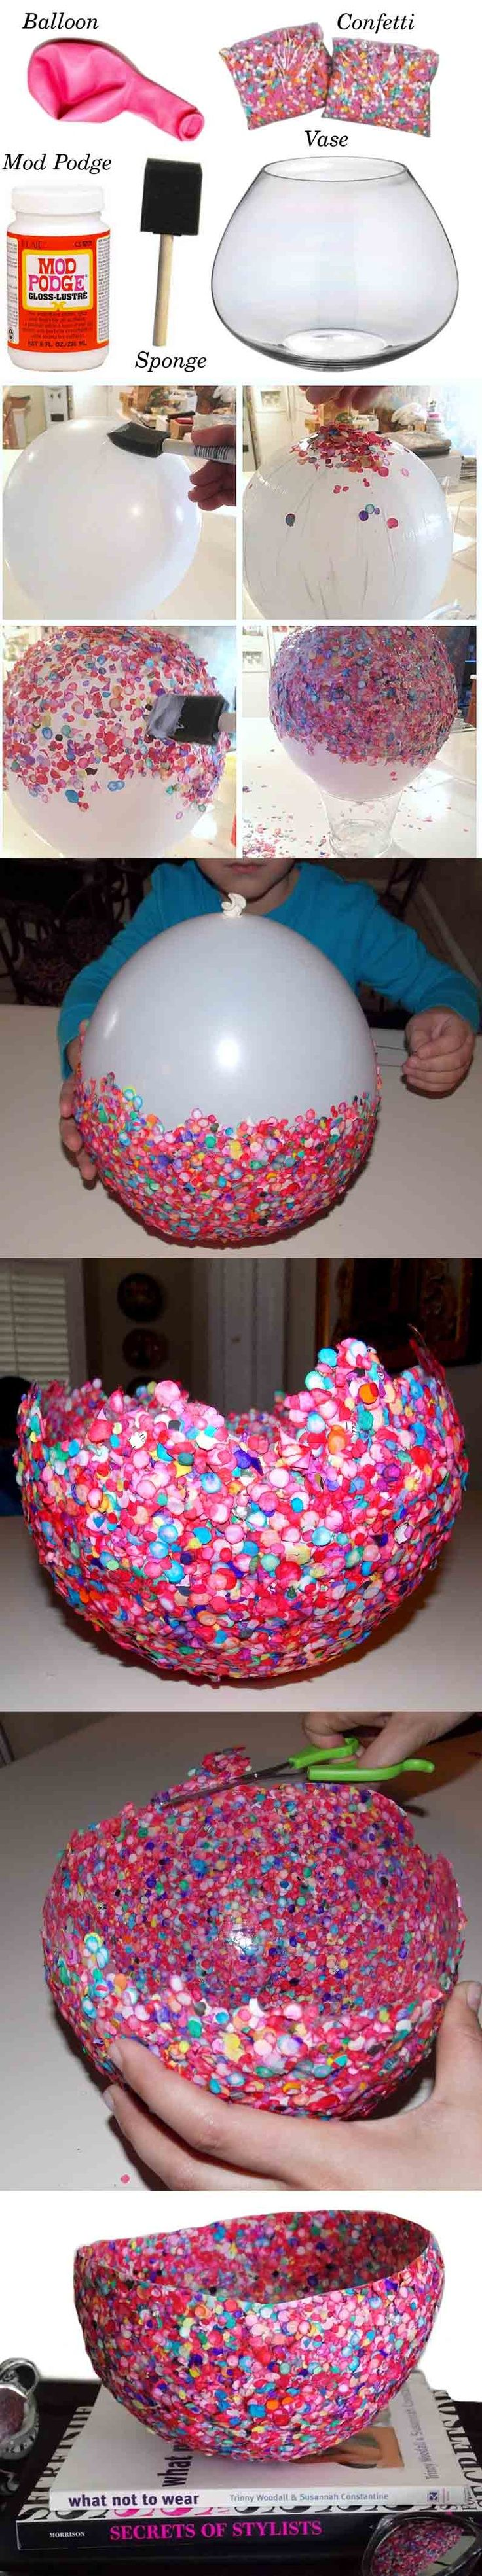 Bol De Confeti Ez Diy Diy Home Crafts Diy Confetti Diy